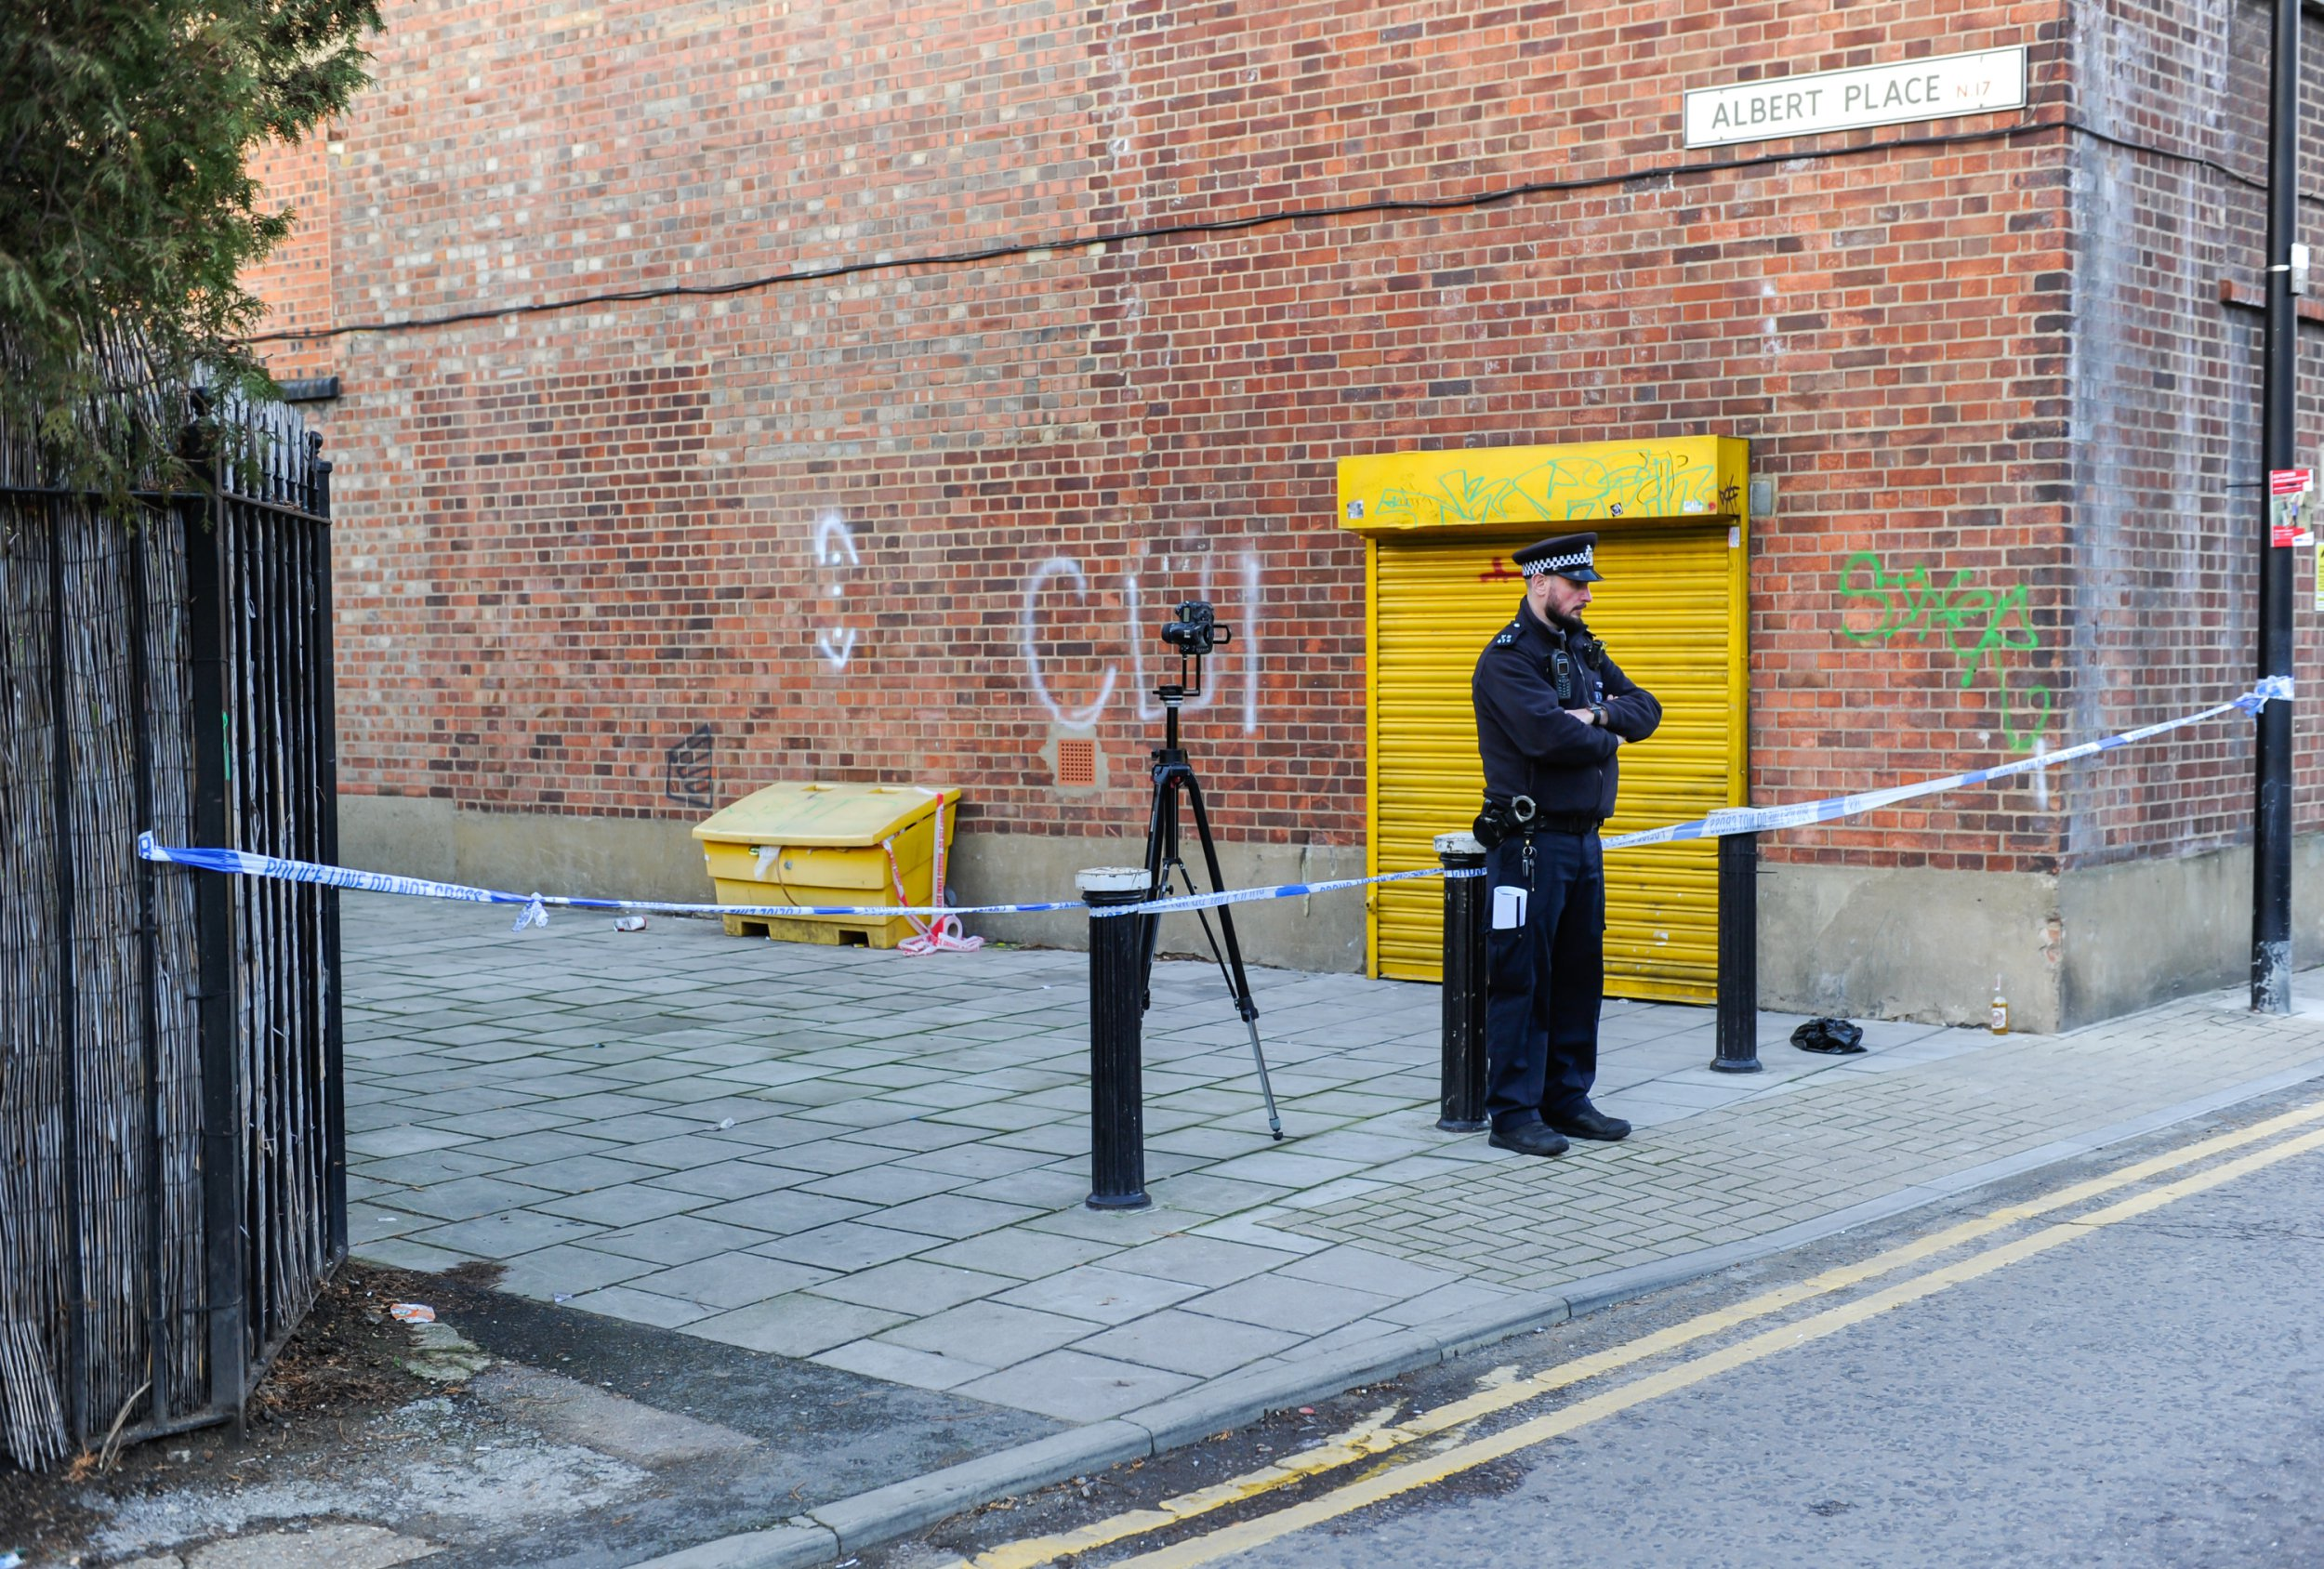 Image ??Licensed to i-Images Picture Agency. 22/12/2018. London, United Kingdom. Tottenham stabbing. A police cordon can still be seen at the crime scene. A young man has been stabbed to dead in an alleyway off a busy high street in north London. Emergency services were scrambled to Albert Place, off Tottenham High Road, at 1:20 am on Saturday. The victim was pronounced dead in hospital. Picture by Gustavo Valiente / i-Images